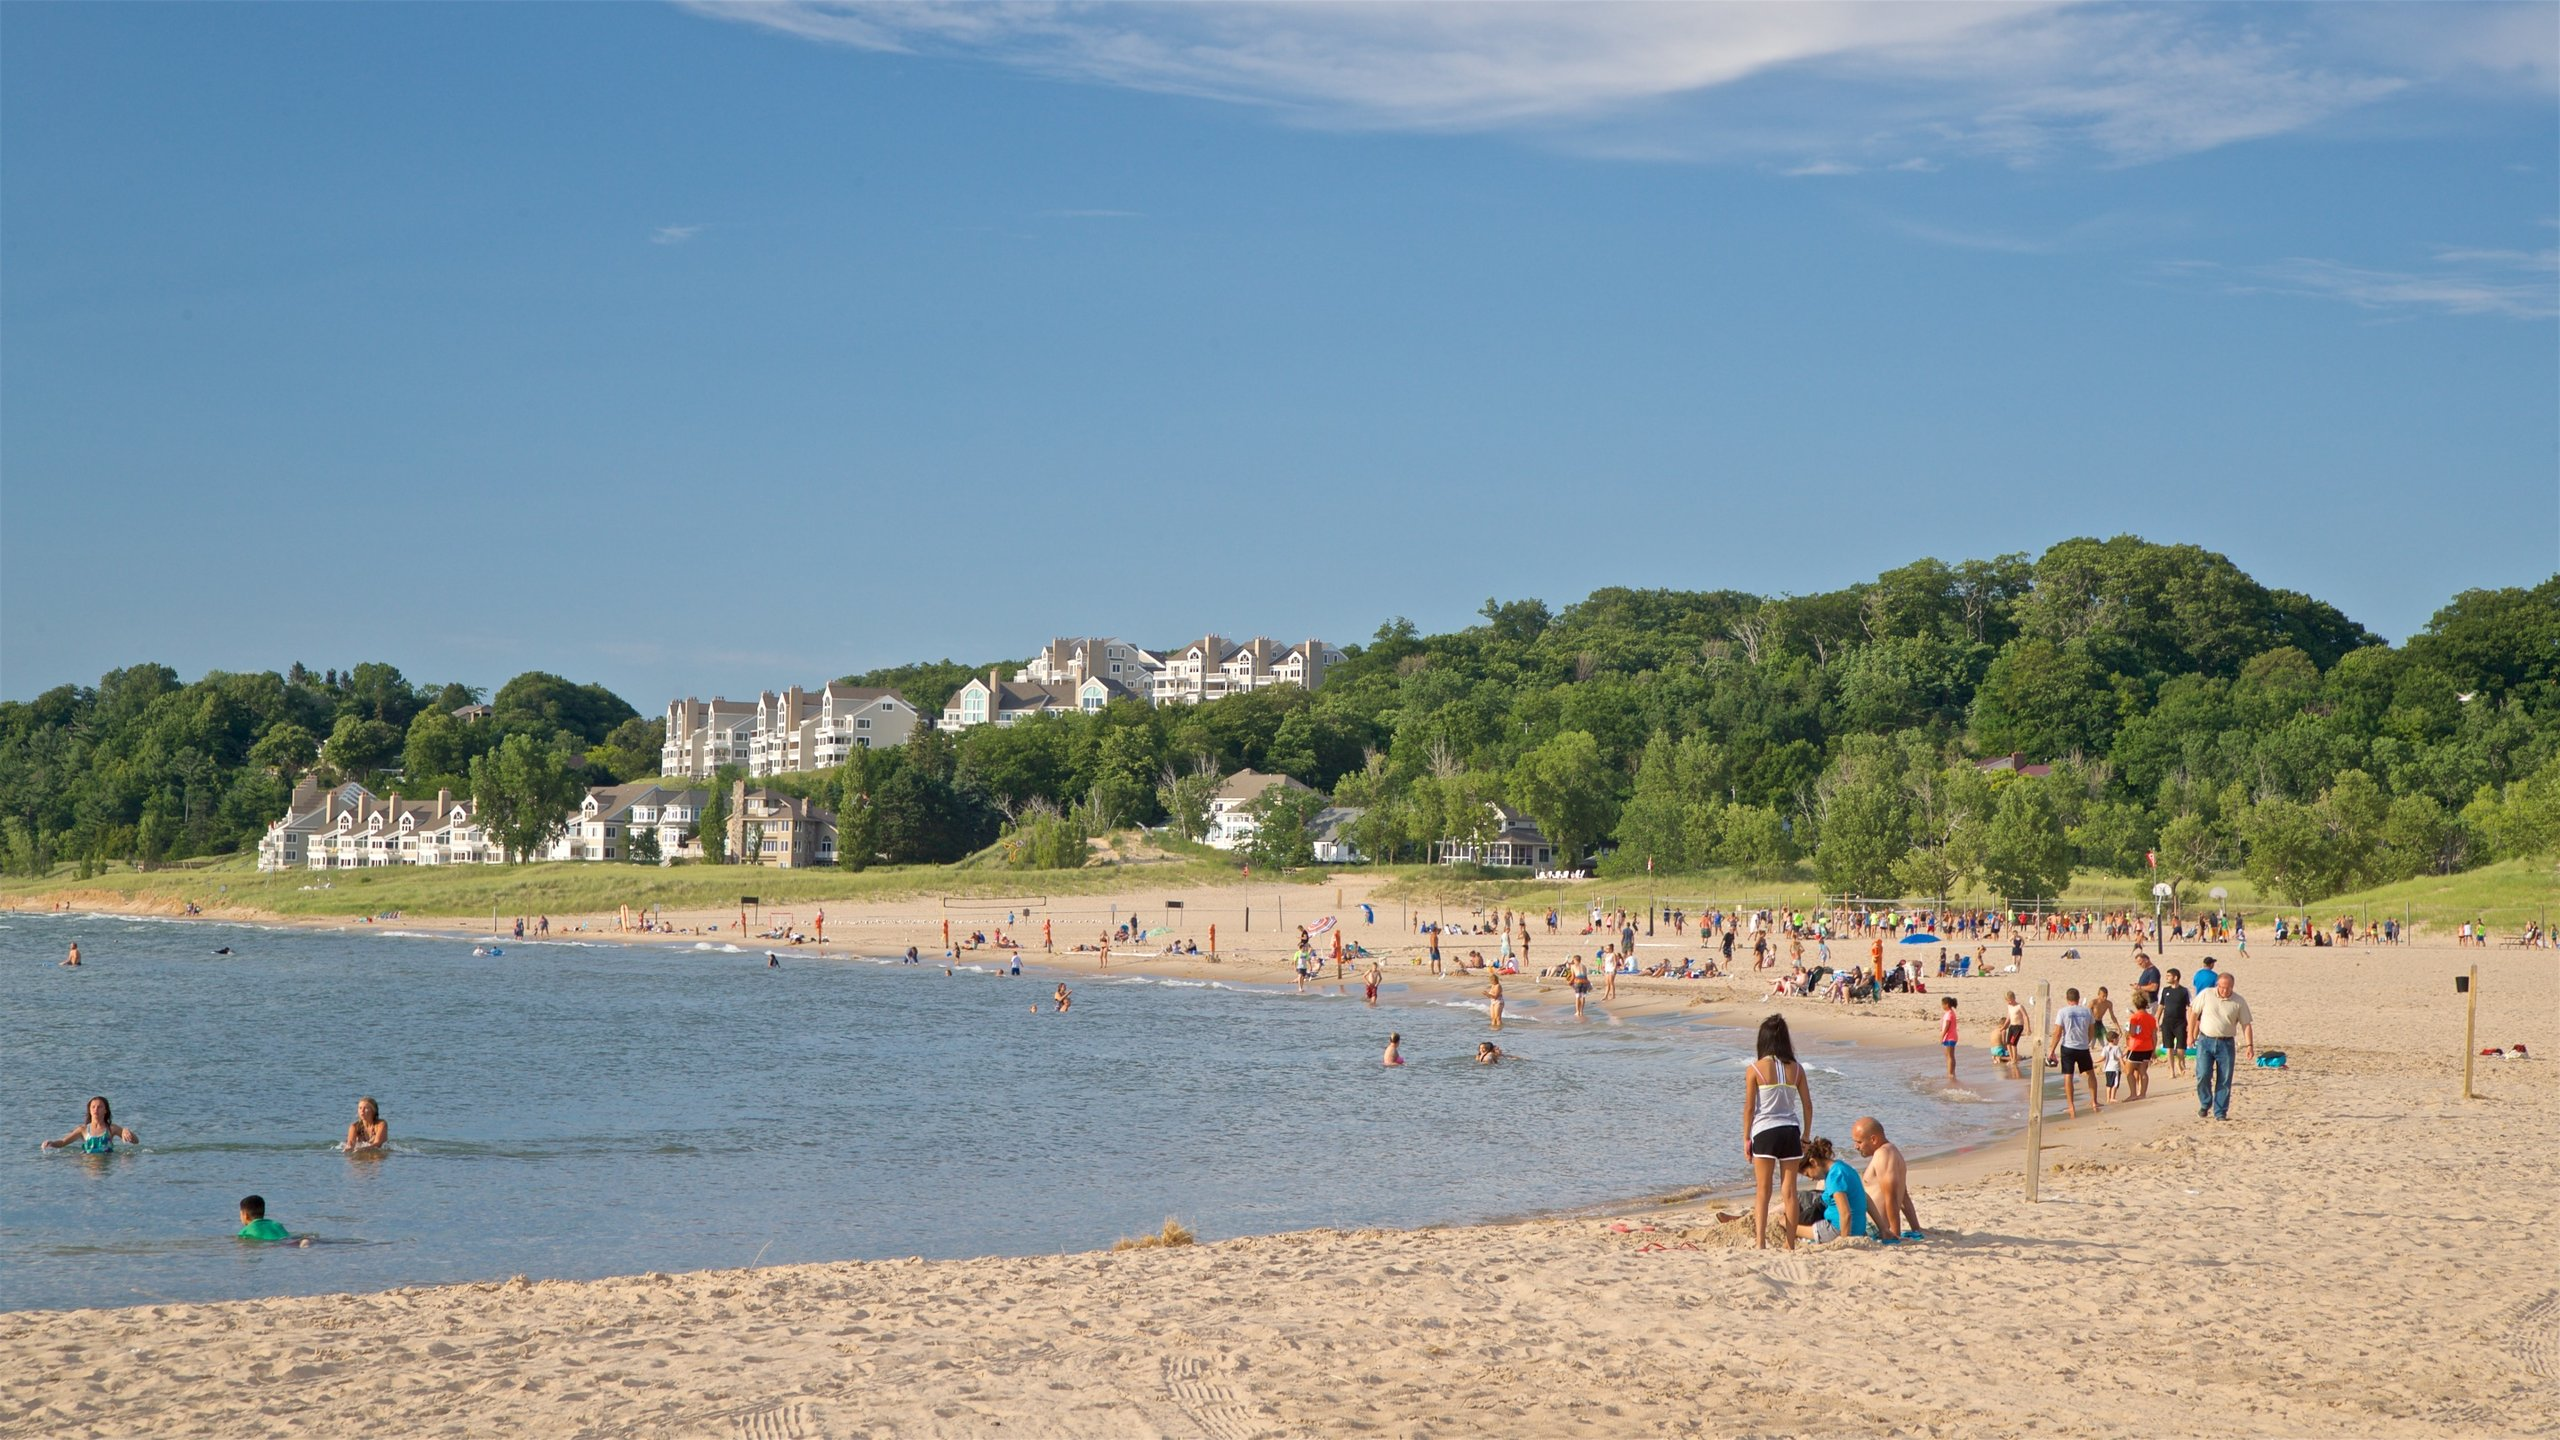 10 Best Hotels Closest To Holland State Park In Ottawa Beach For